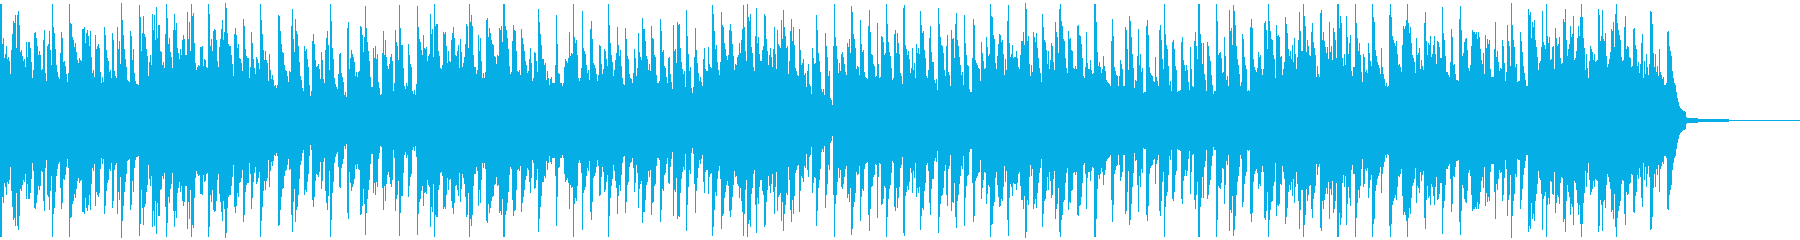 Stylish game BGM's reproduced waveform